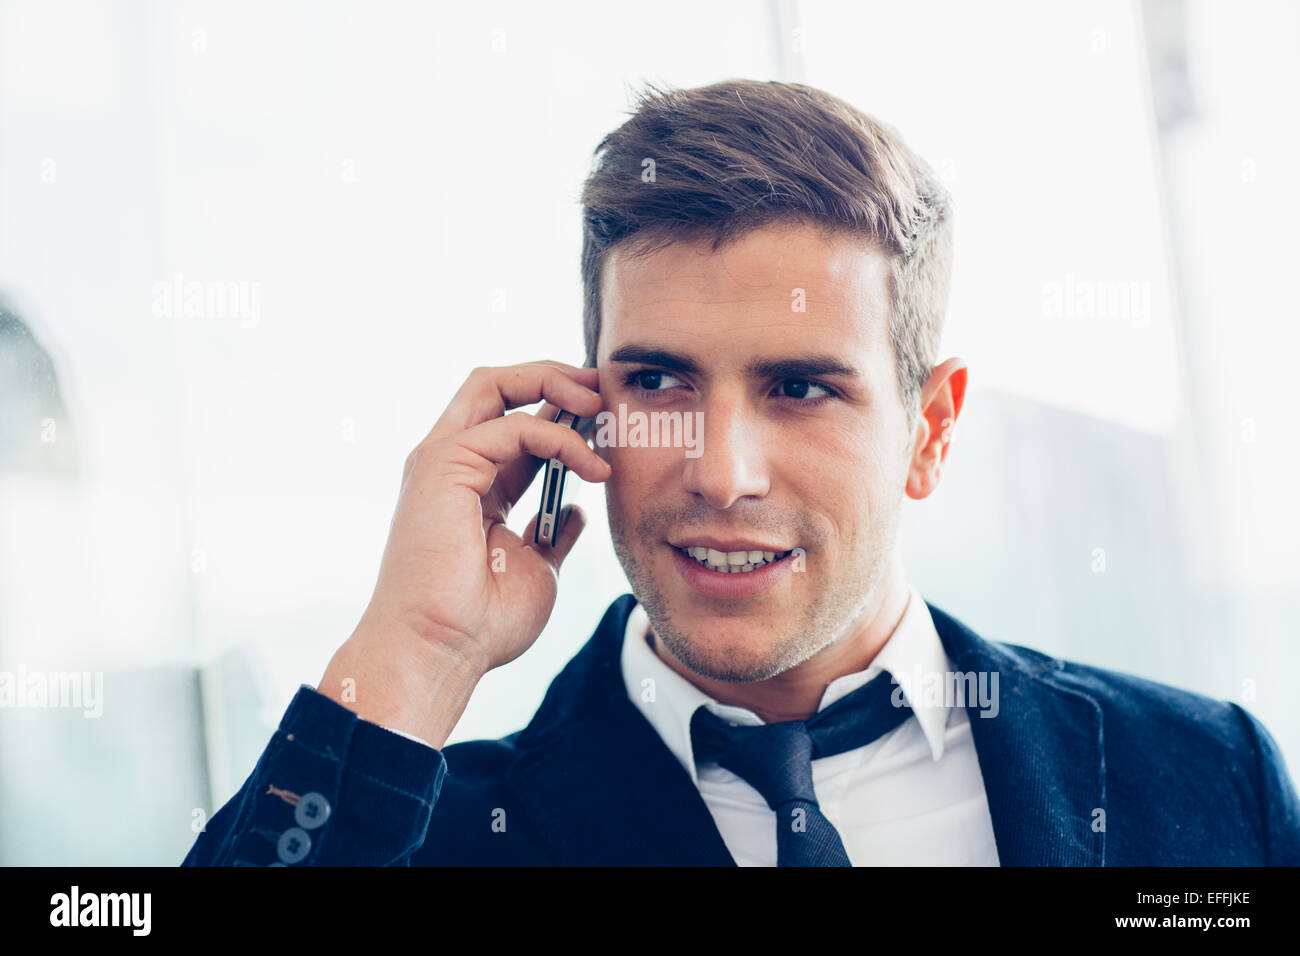 Businessman using a mobile phone - Stock Image